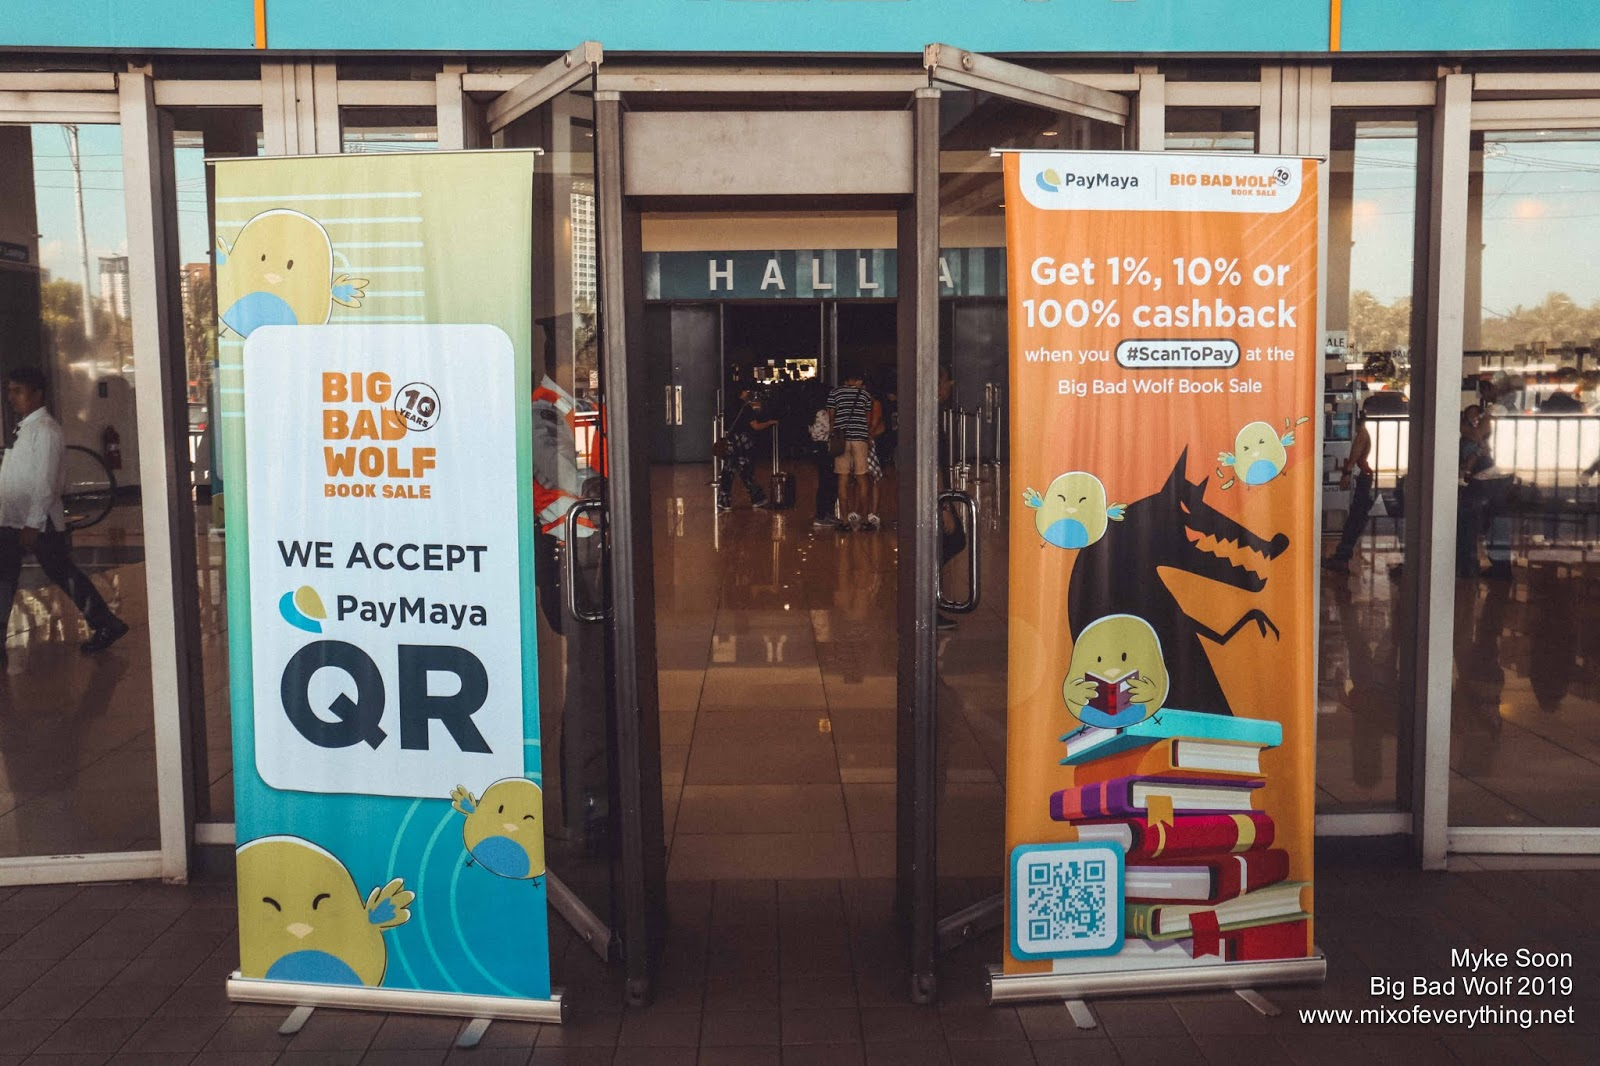 Things to Expect at the Big Bad Wolf Book Sale 2019 - Hello! Welcome